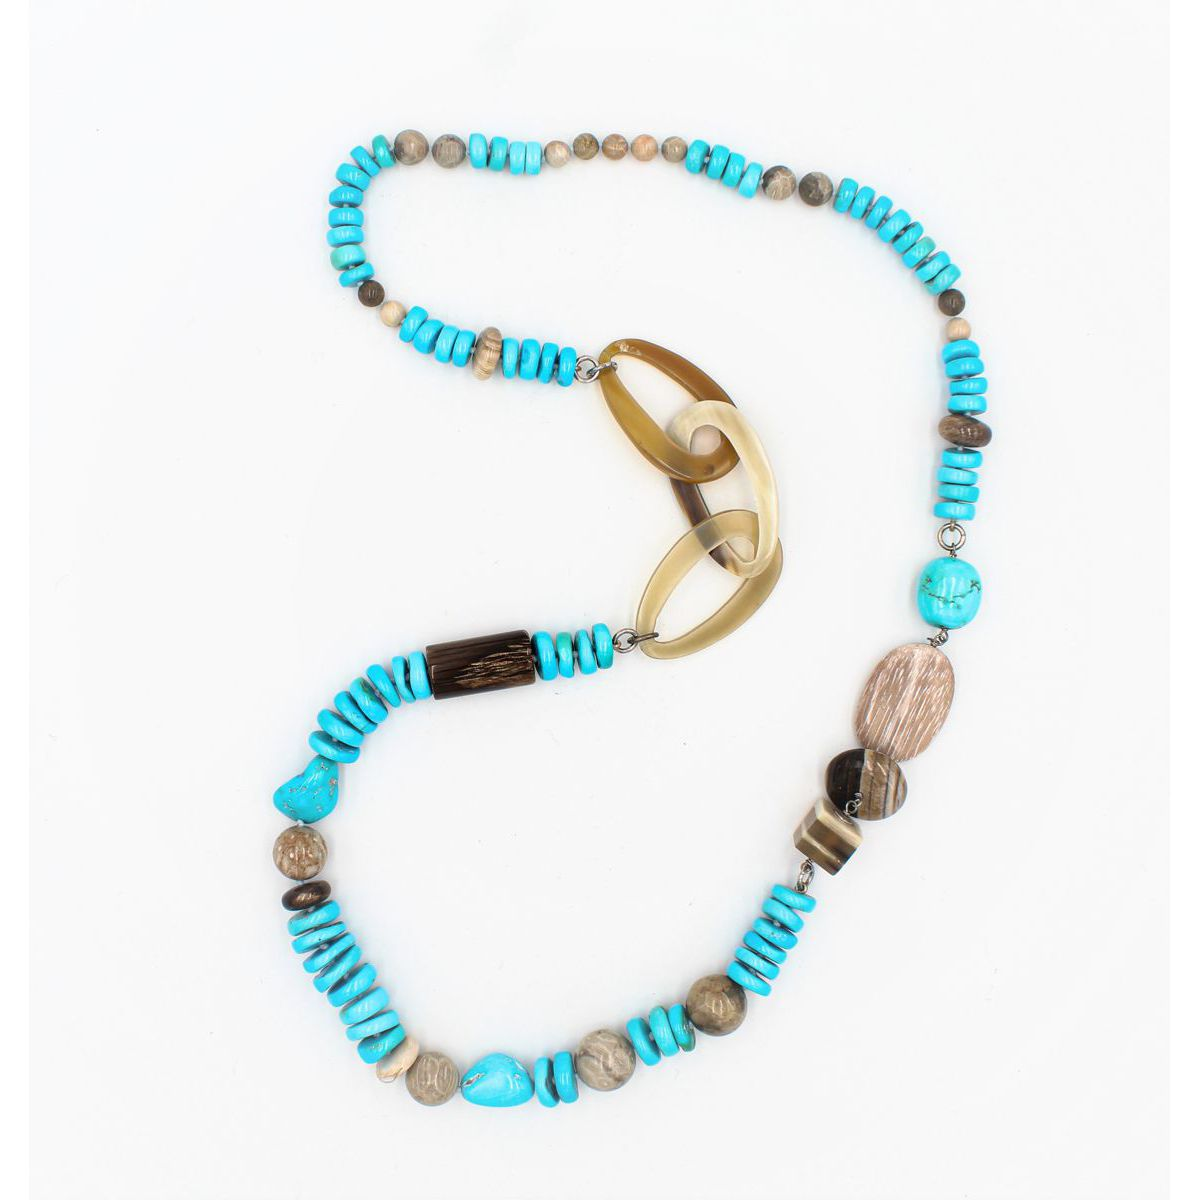 TURQUOISE AND GREY JASPER NECKLACE Turquoise BRASS Gioielli